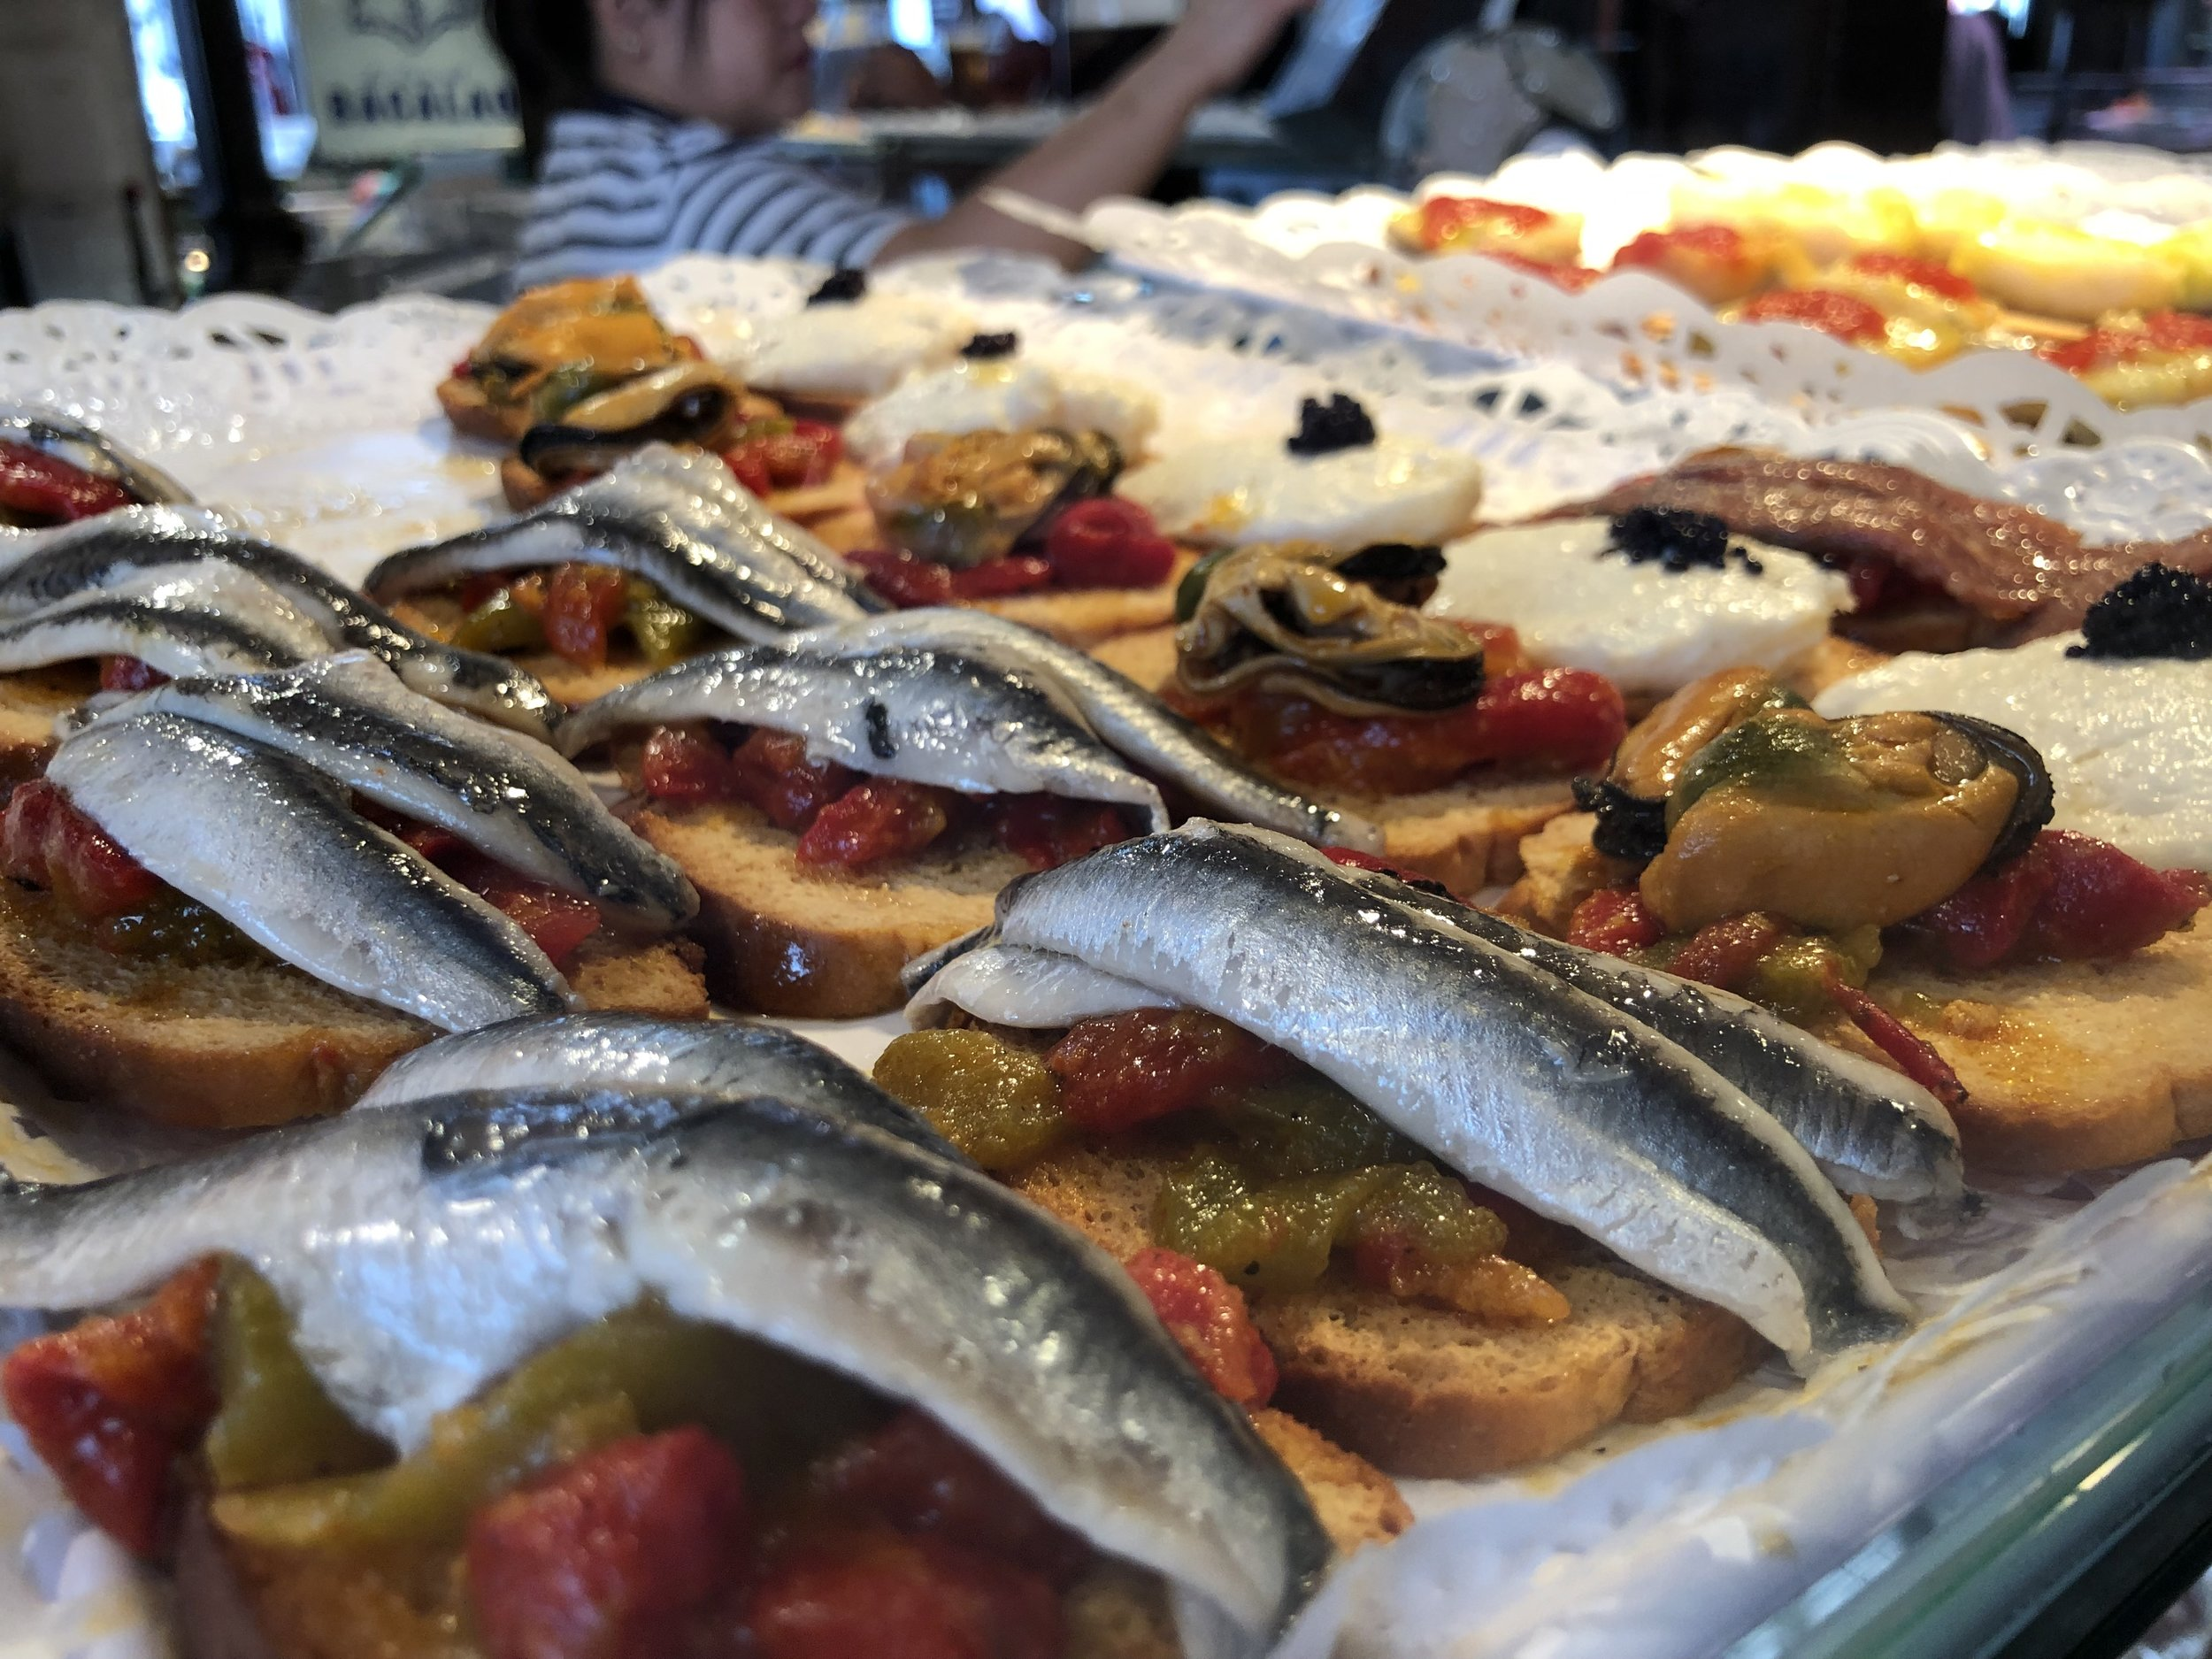 Some of the tapas available at Mercado de San Miguel.